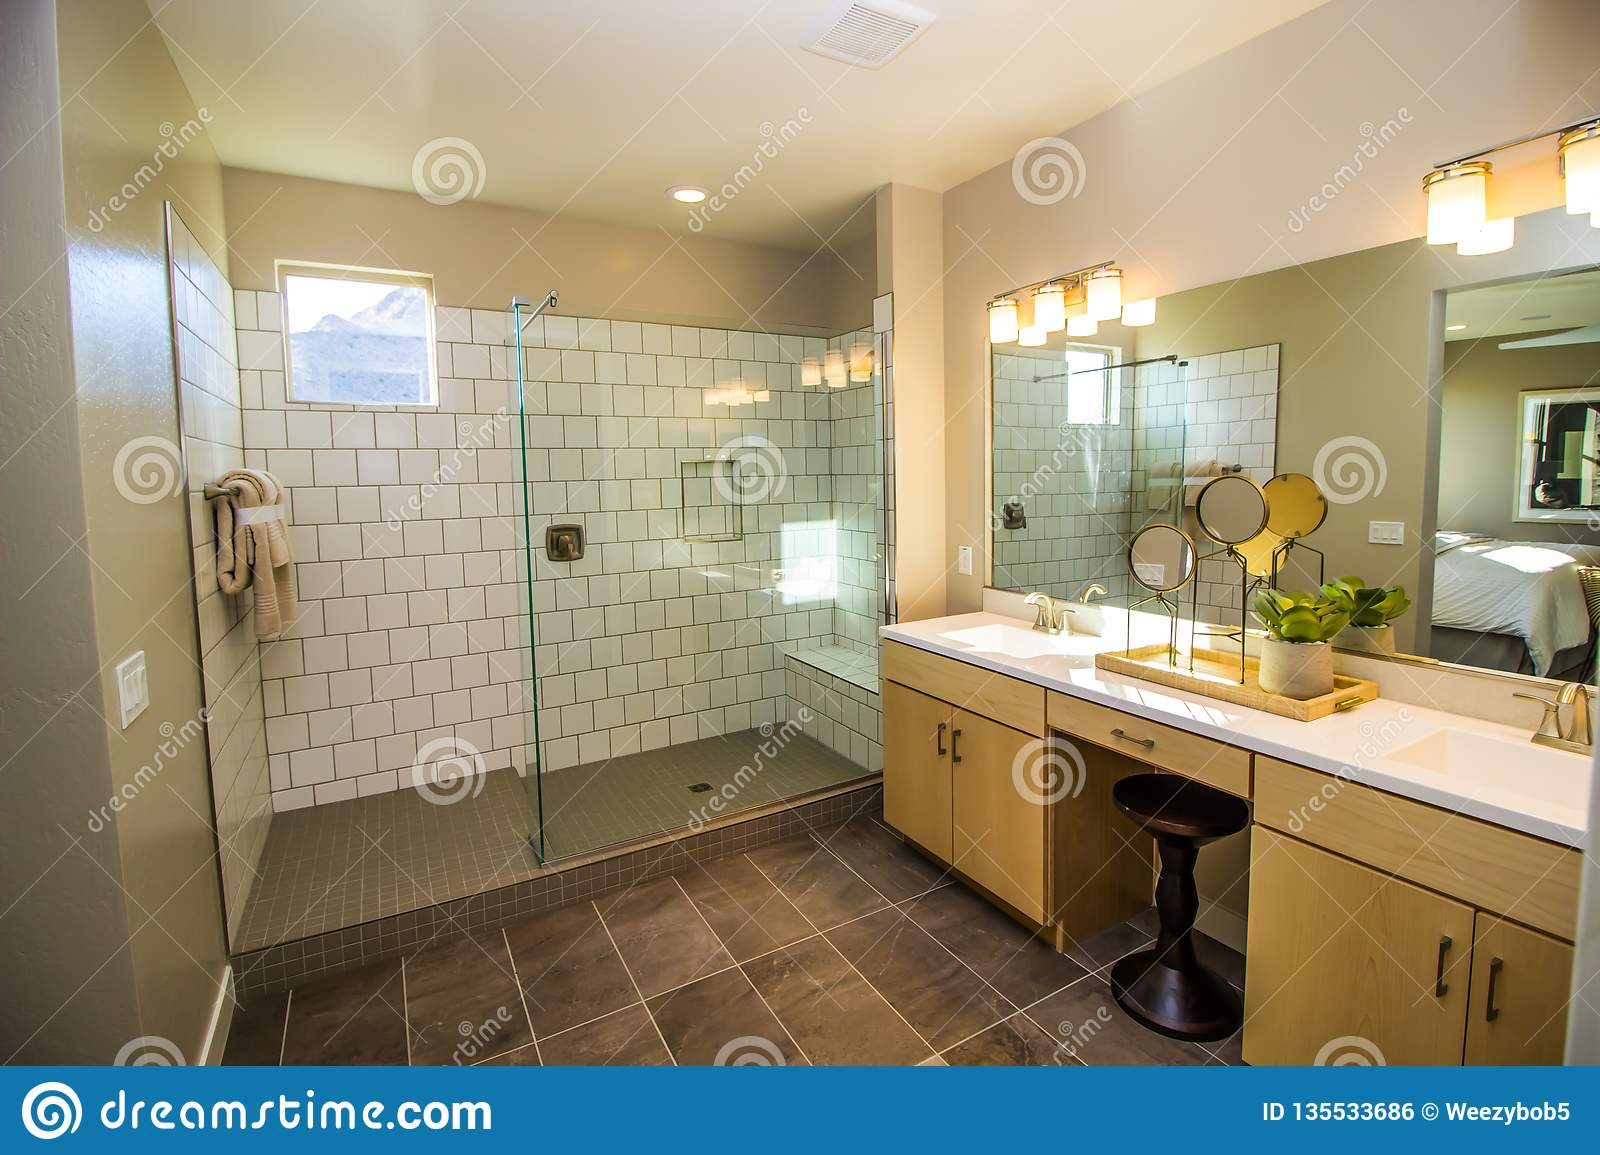 526 Modern Walk Shower Photos Free Royalty Free Stock Photos From Dreamstime